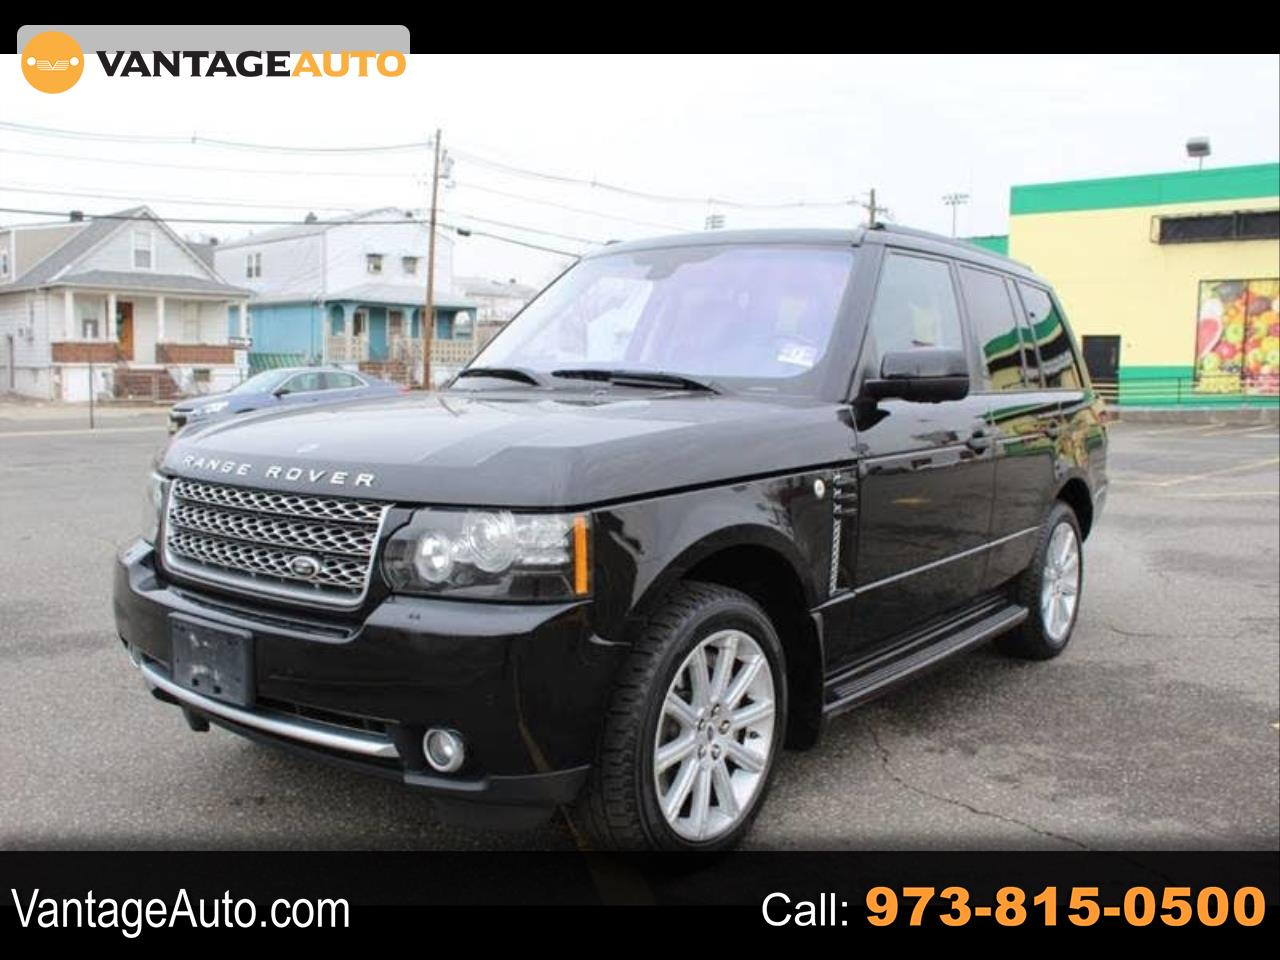 Land Rover Range Rover Supercharged 2012